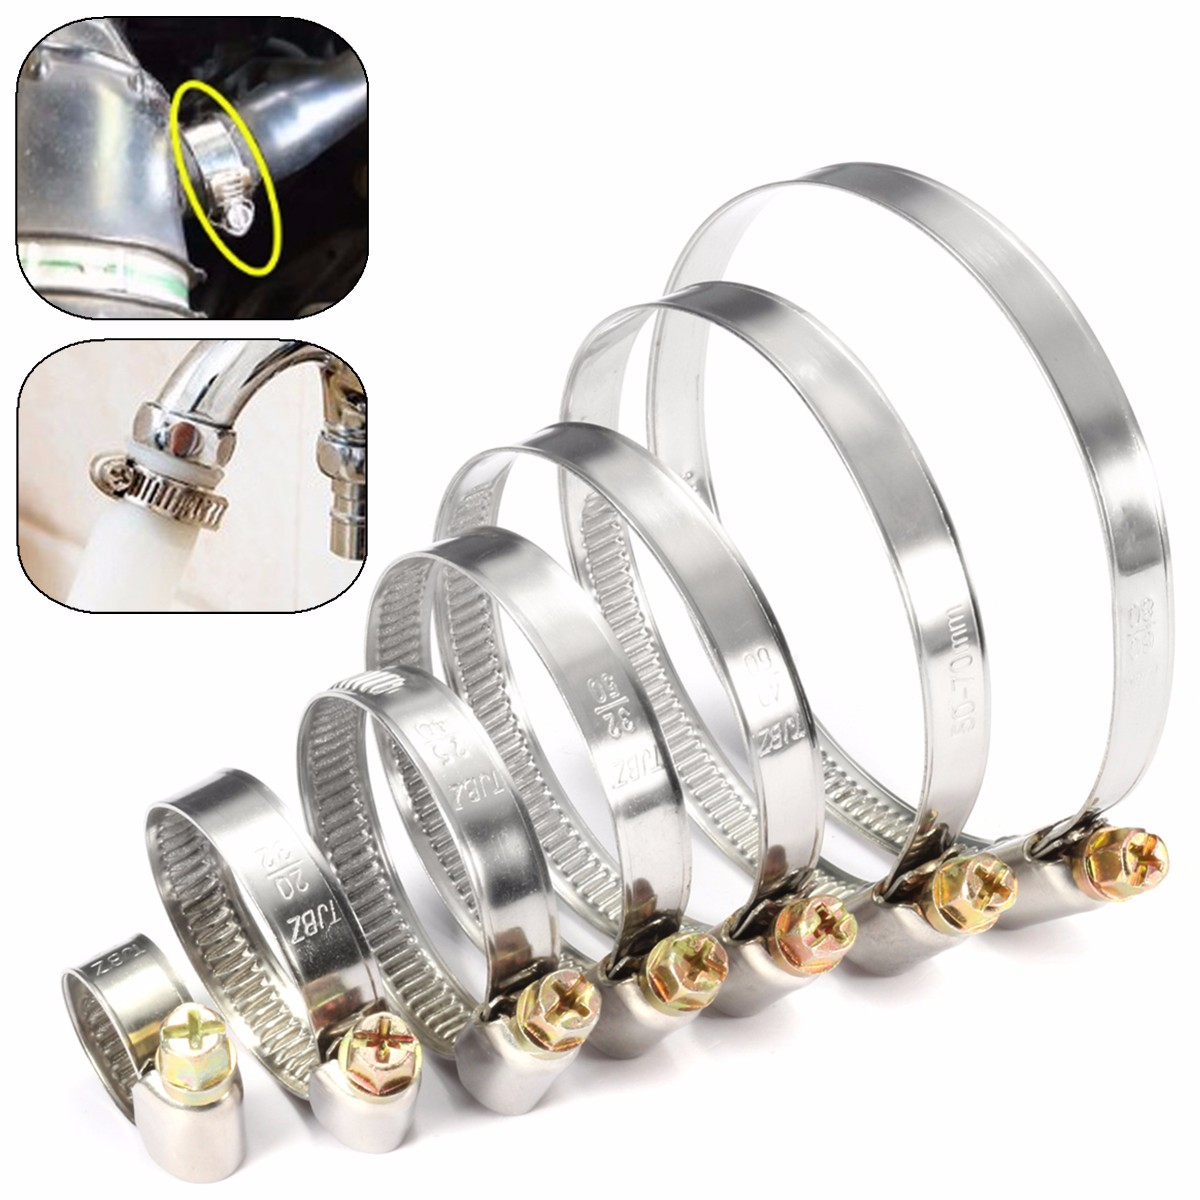 Pipe Clamps Genuine Jubilee Stainless Steel Hose Clips Fuel Hose Pipe Clamps Worm Drive Durable Anti-oxidation 10pcs hose clamp double ears o clips clamp worm drive fuel water hose pipe clamps clips